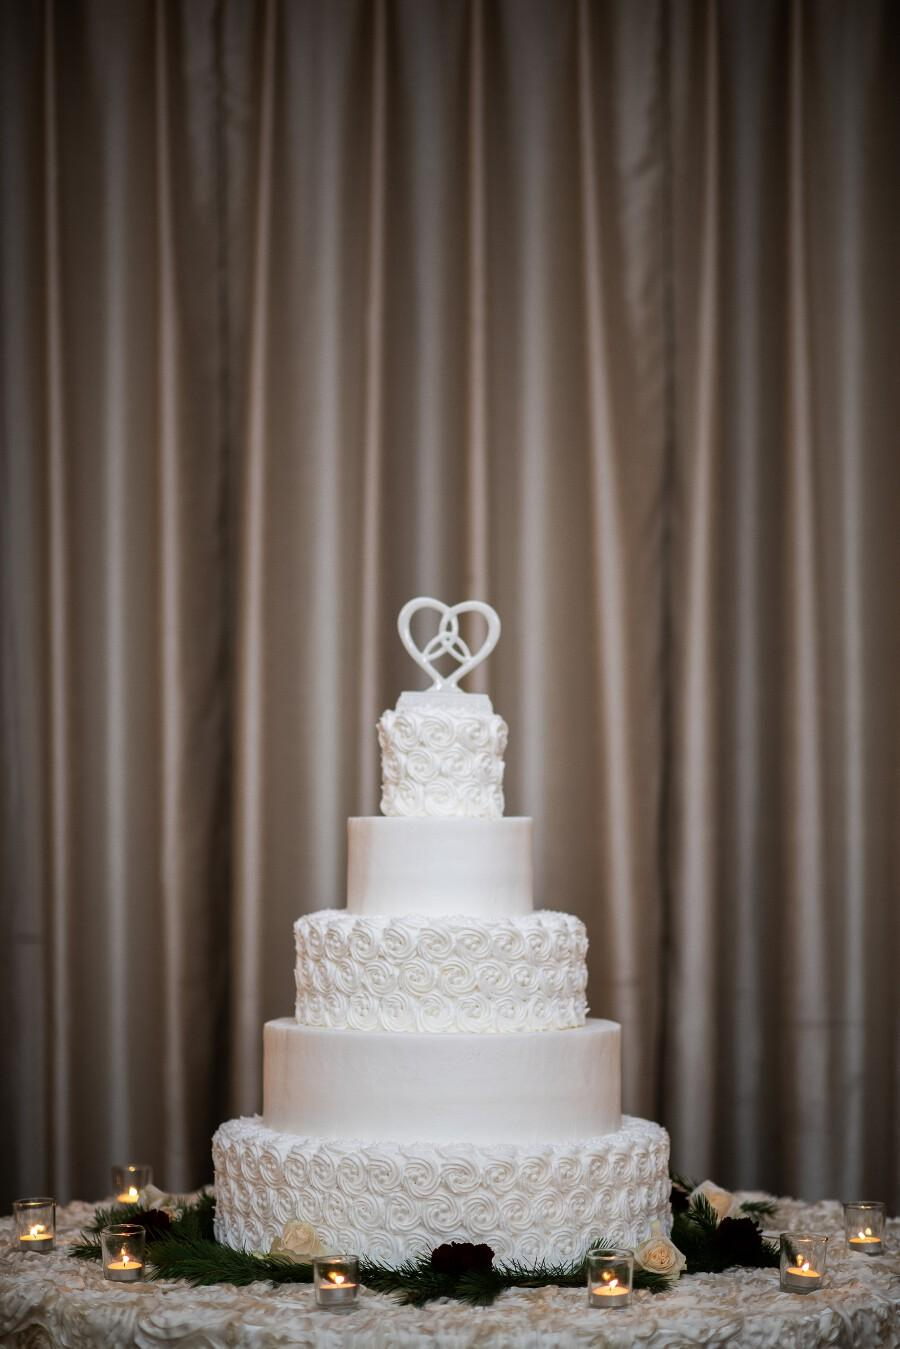 Beautiful white wedding cake with heart cake topper